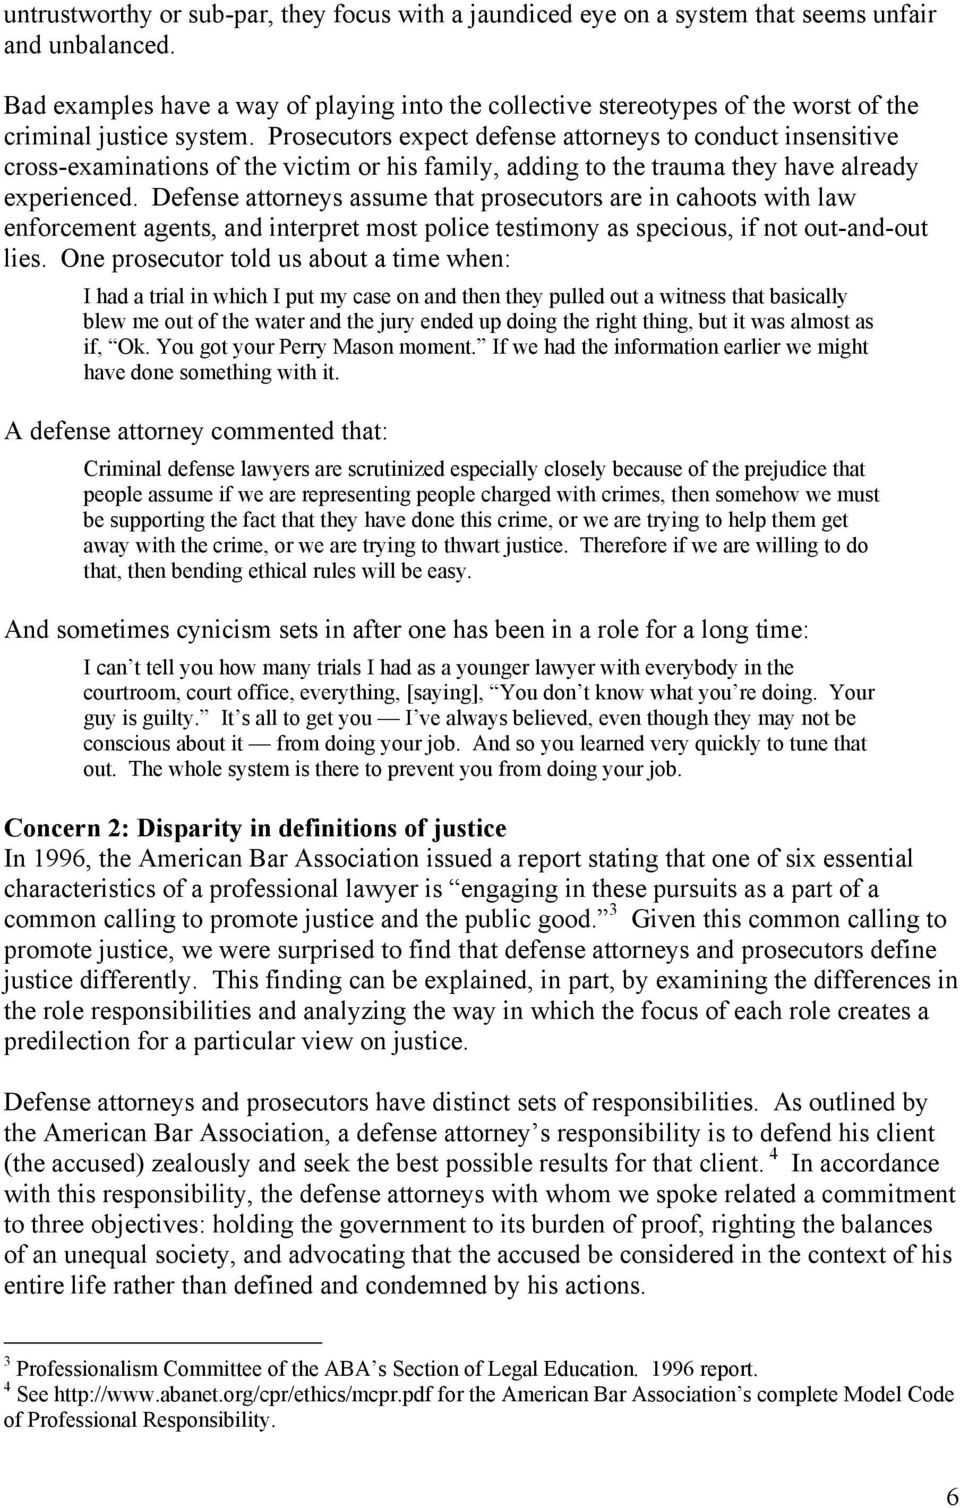 Prosecutors expect defense attorneys to conduct insensitive cross-examinations of the victim or his family, adding to the trauma they have already experienced.